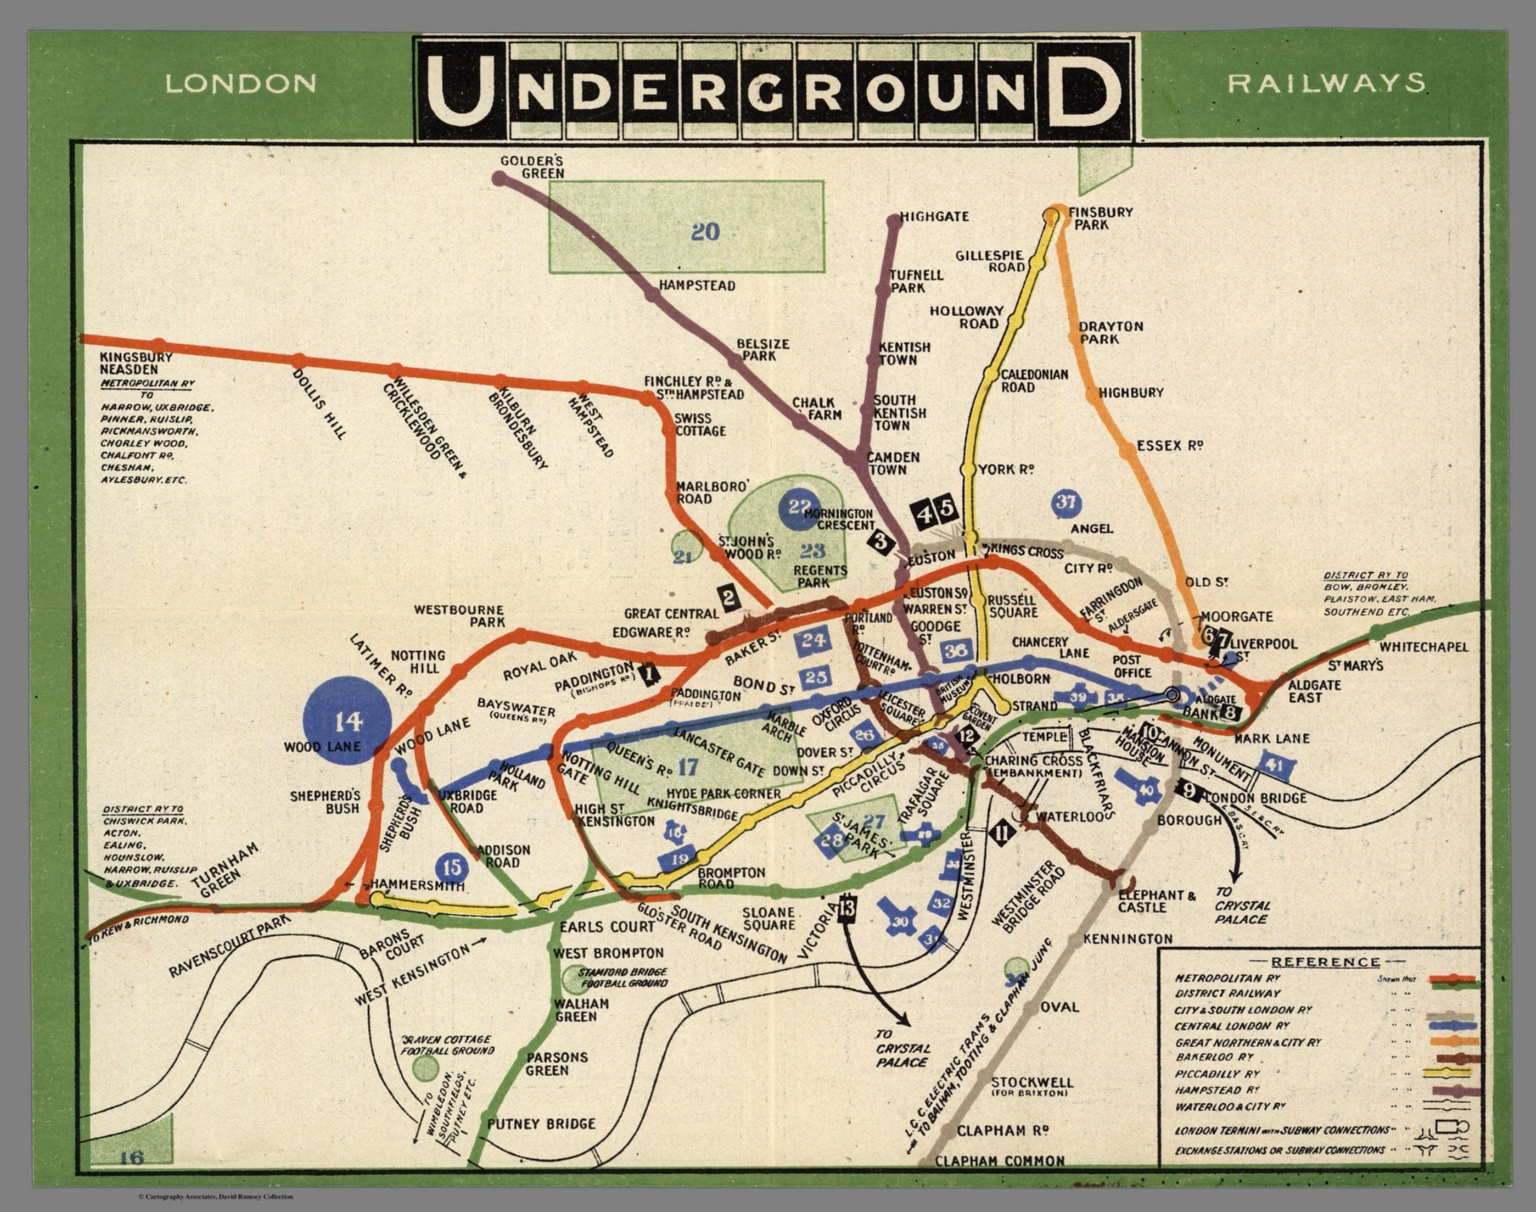 London Underground Railways, 1909 (com'era la mappa della metropolitana londinese a inizio '900) autore ed editore: London Underground Railways (UK)